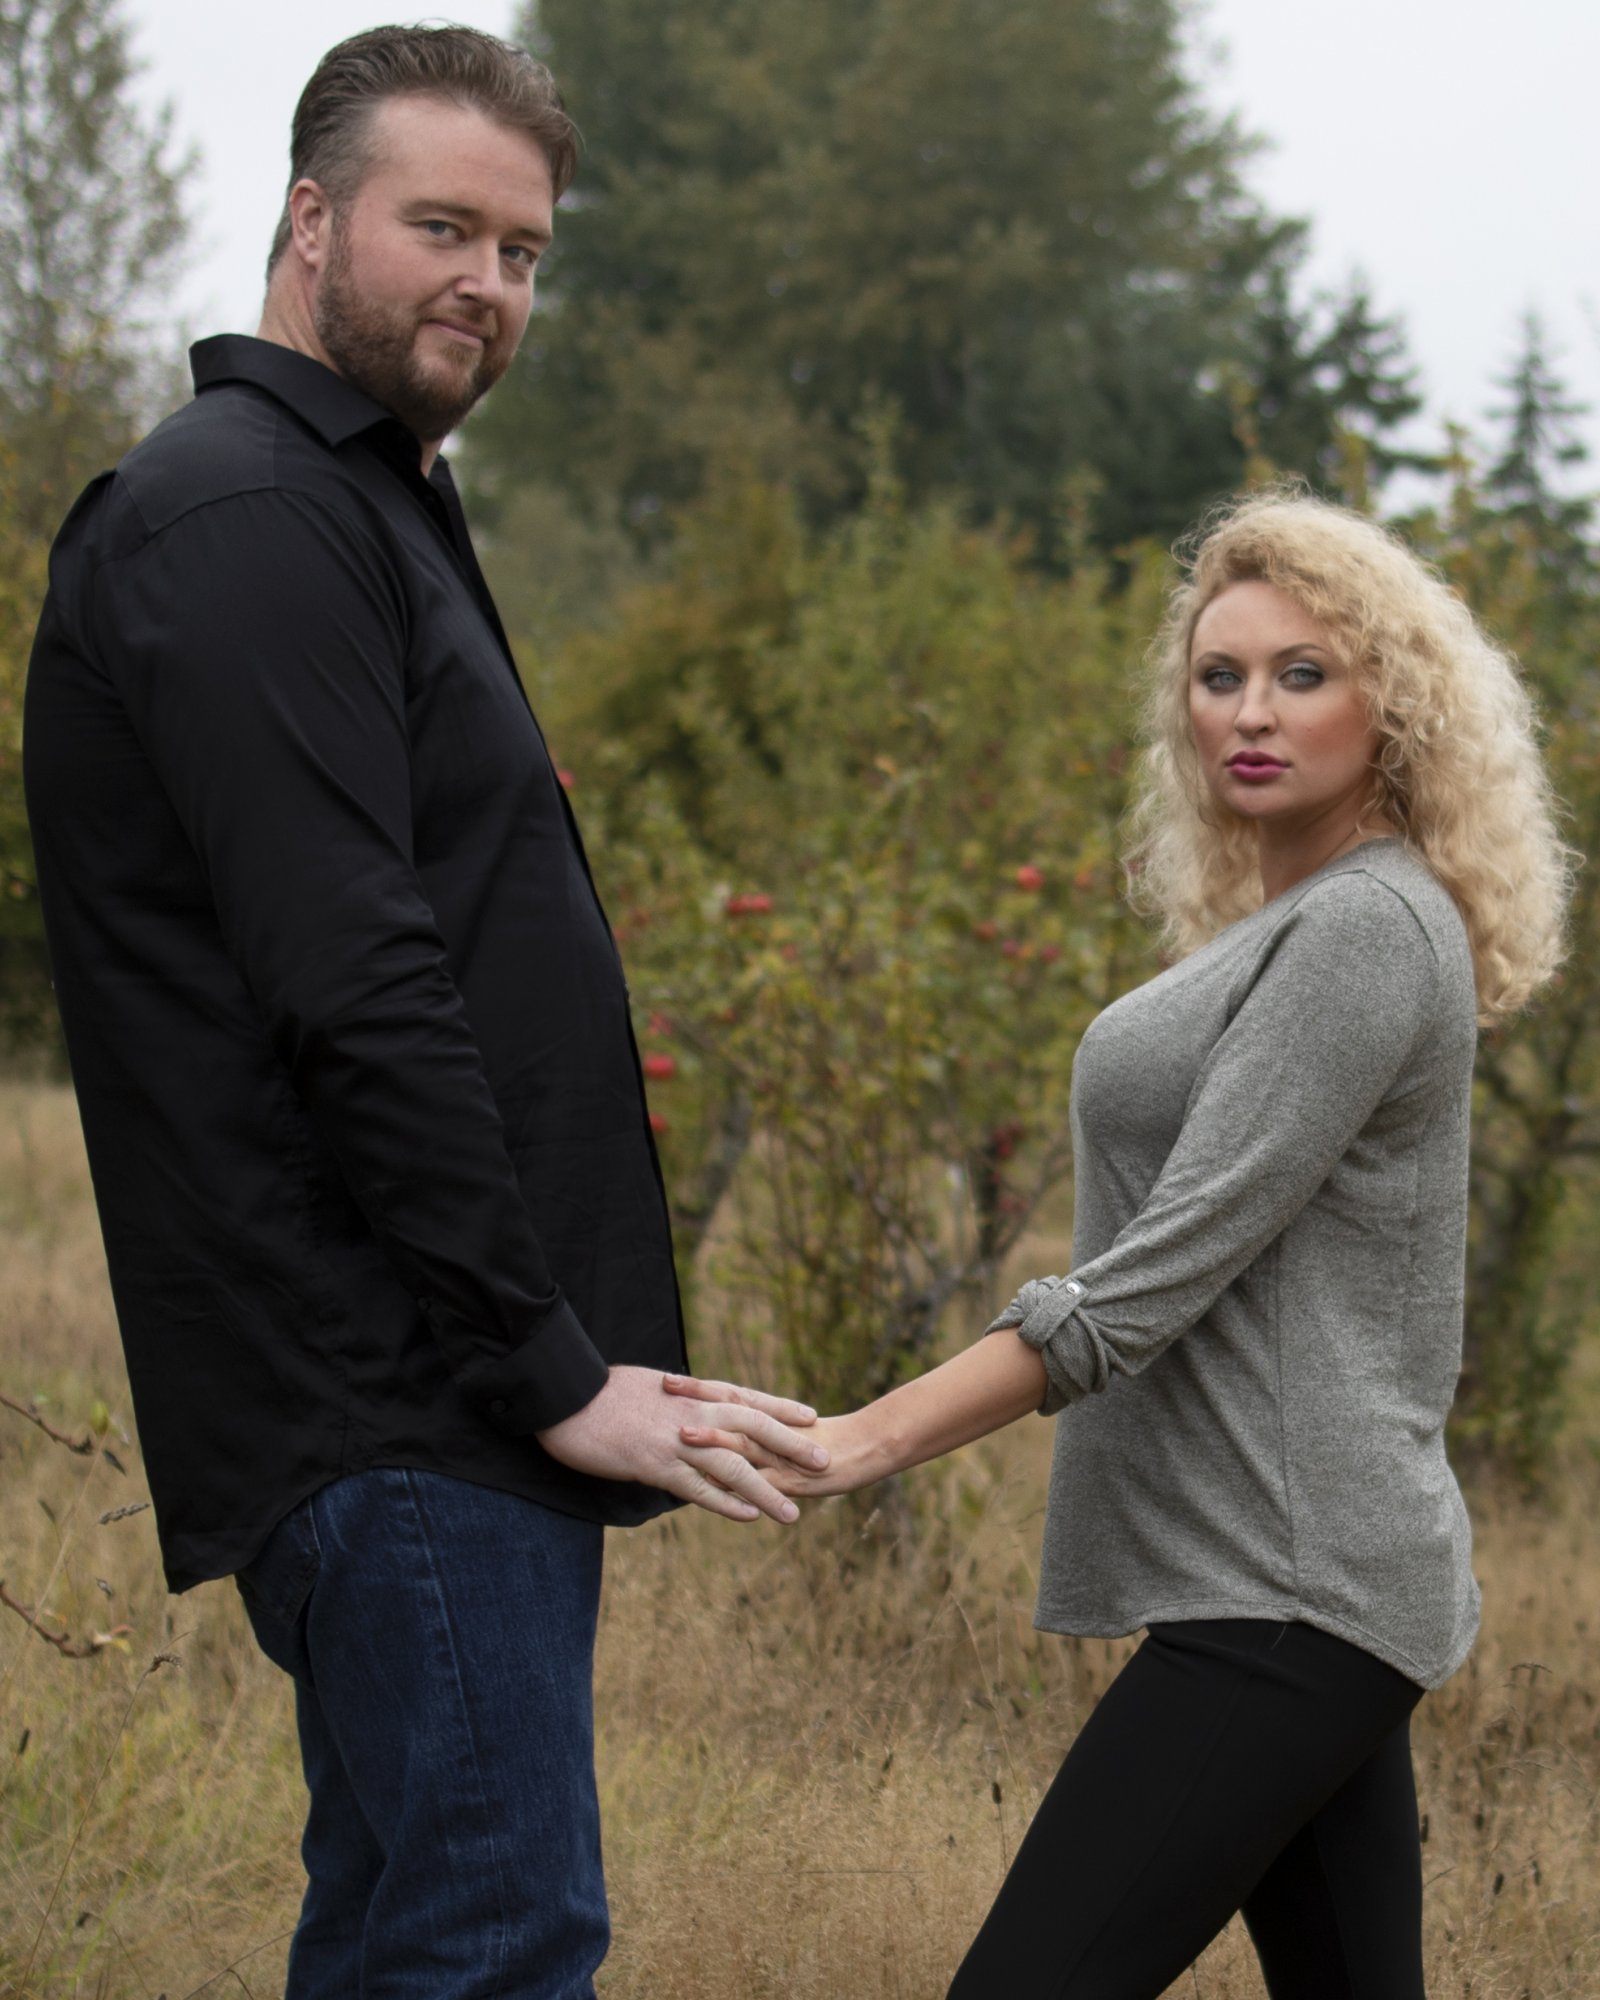 90 Day Fiance Season 8 couple Mike Youngquist and Natalie Mordovtseva